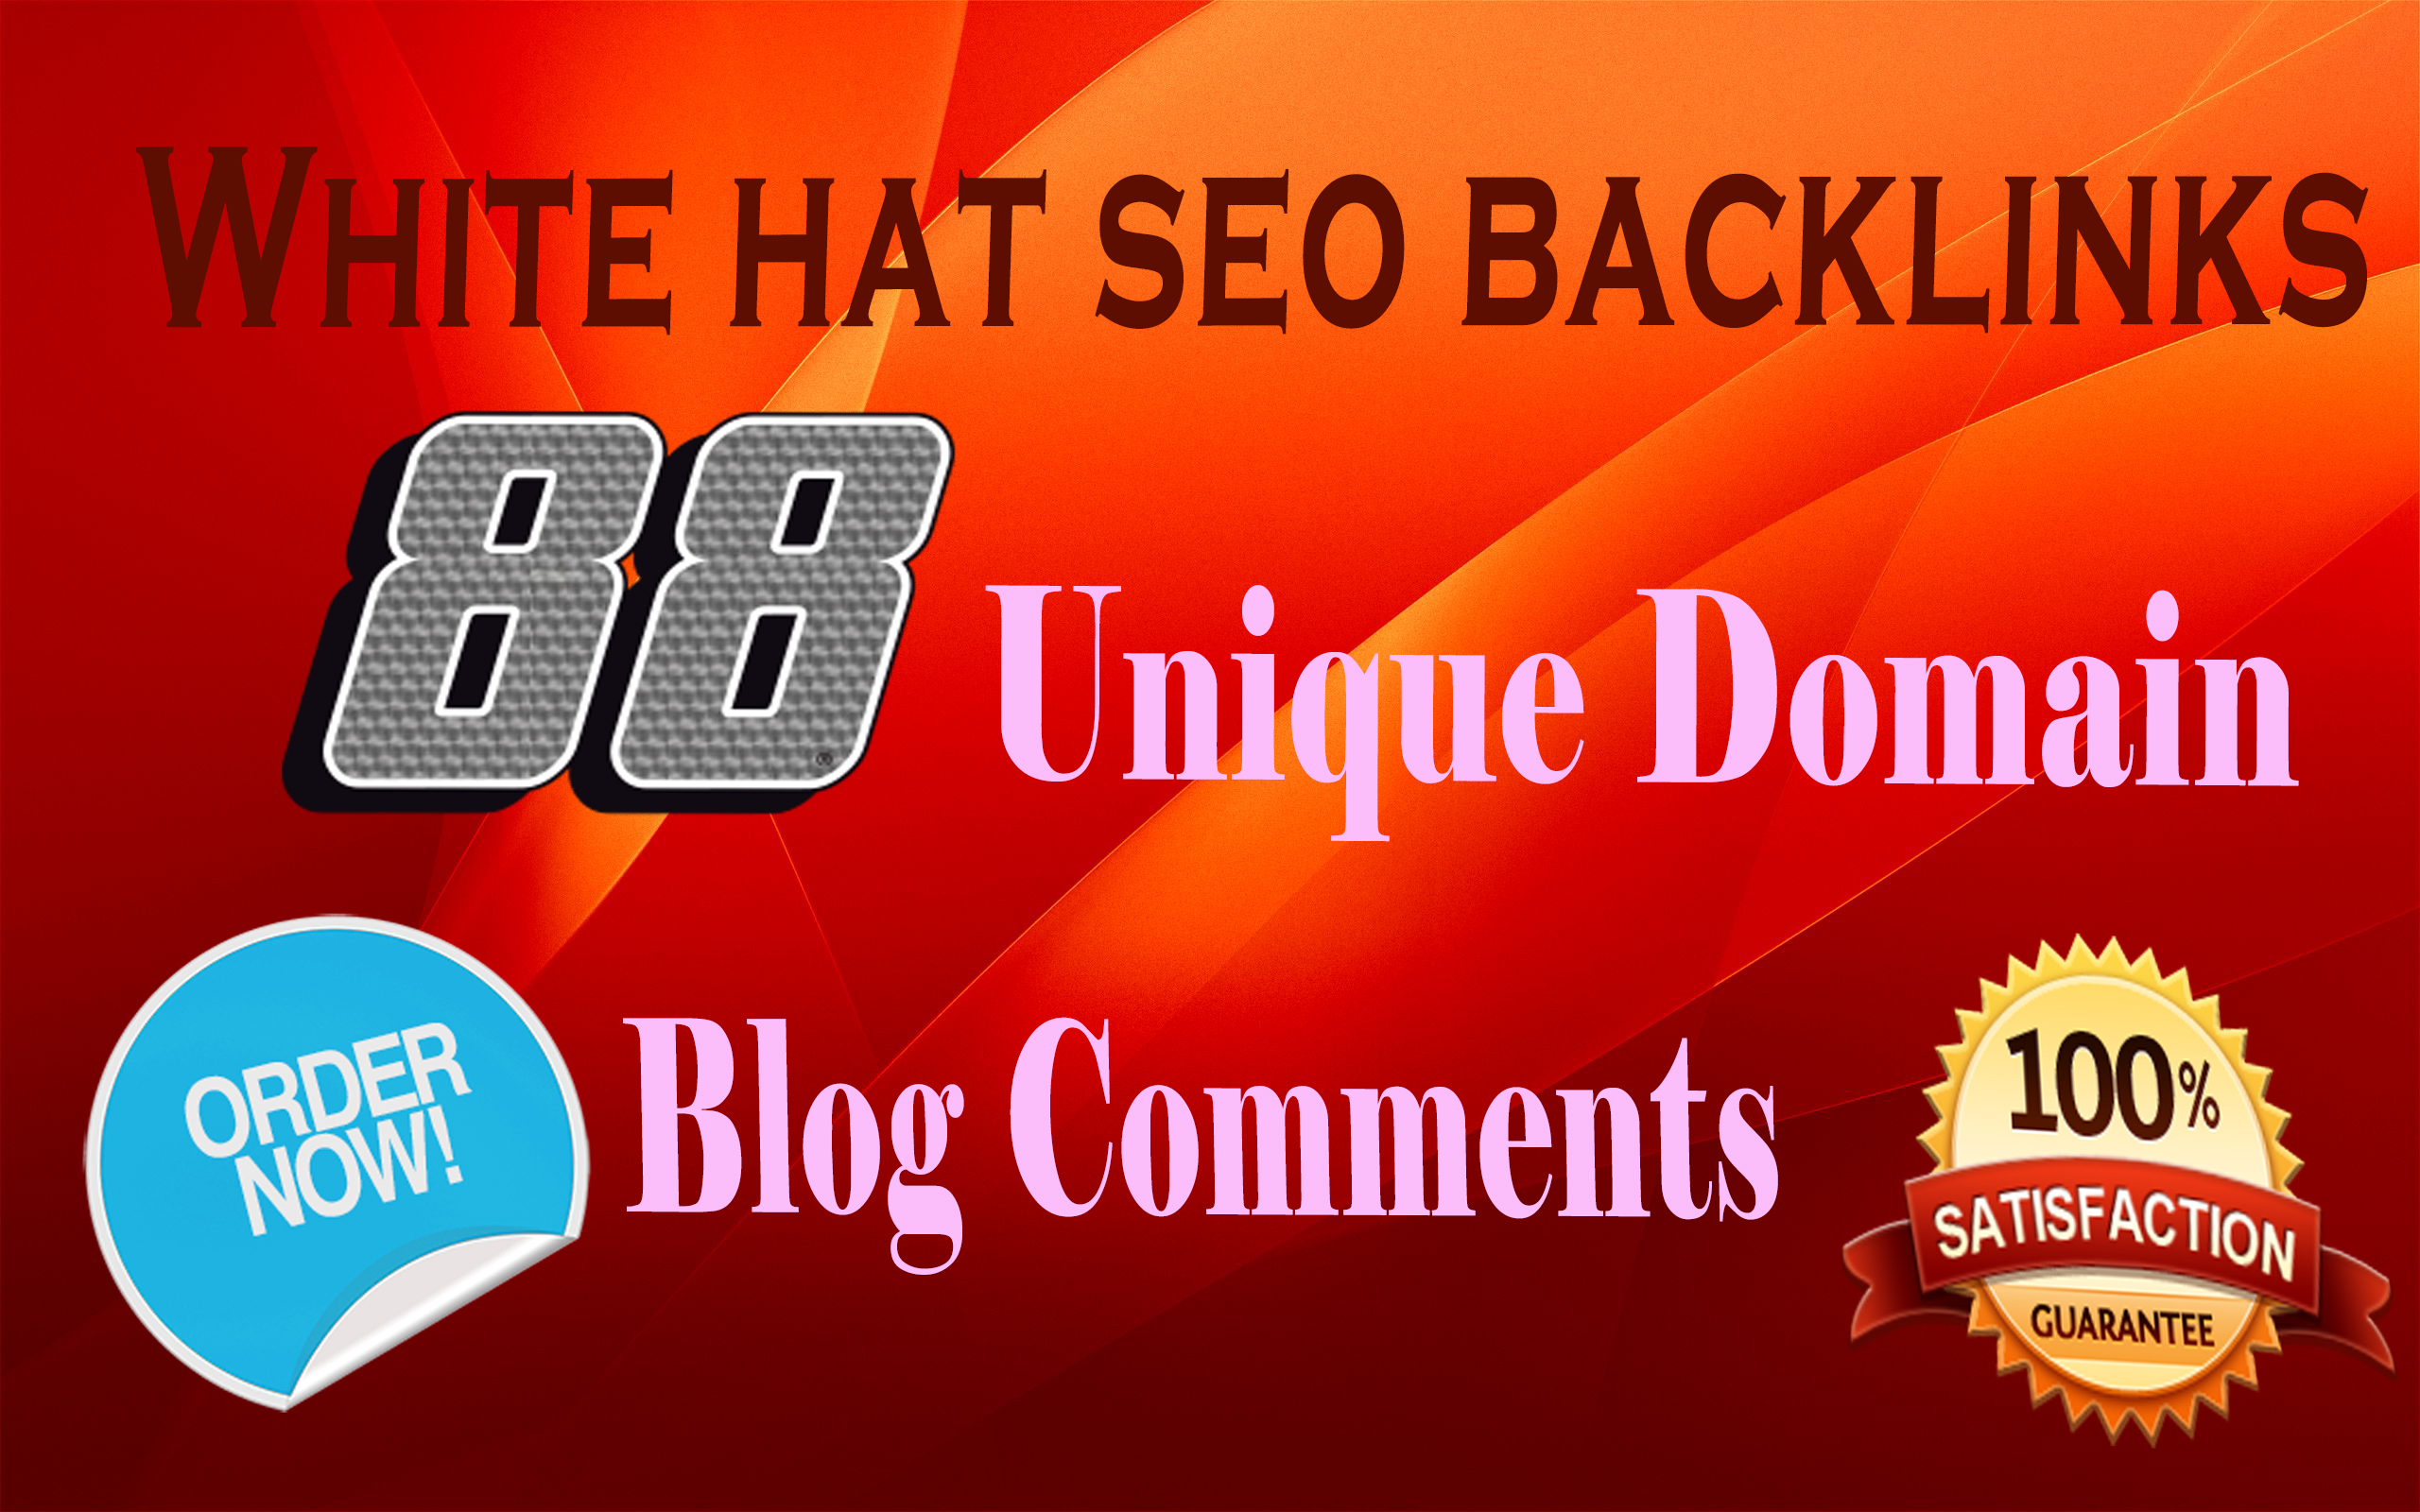 I will do 88 white hat seo backlinks on unique domain blog comments